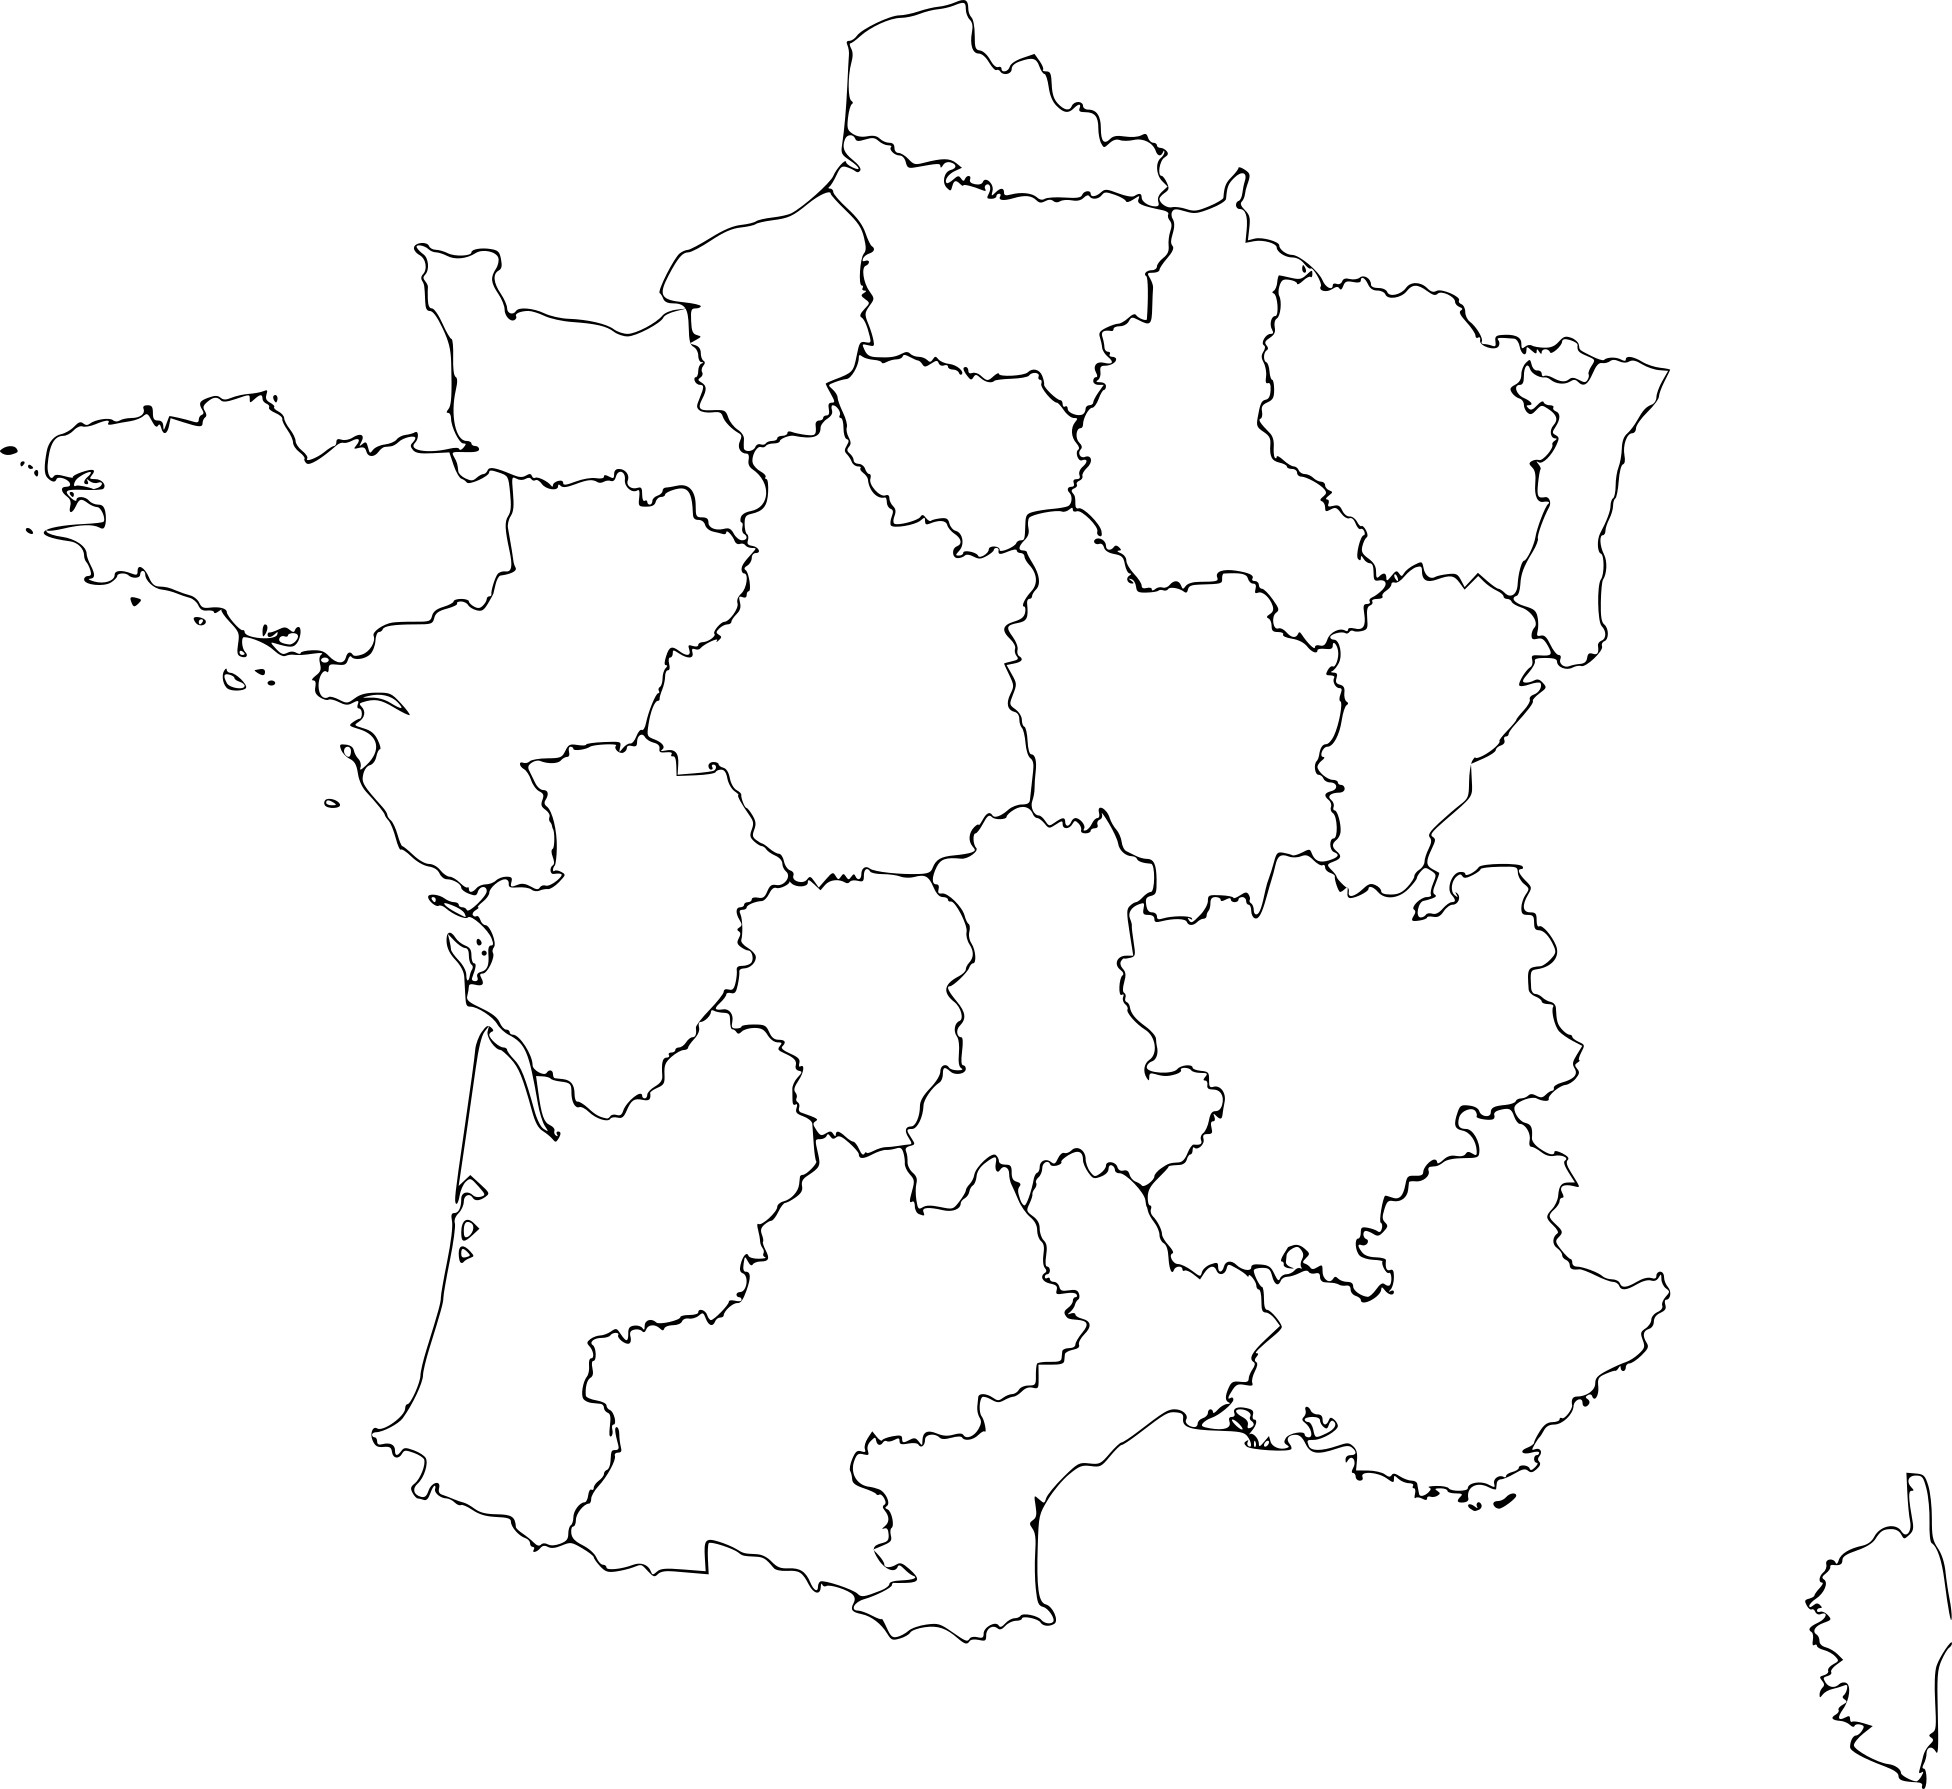 Coloriage Carte De La France À Imprimer Sur Coloriages pour Dessin De Carte De France